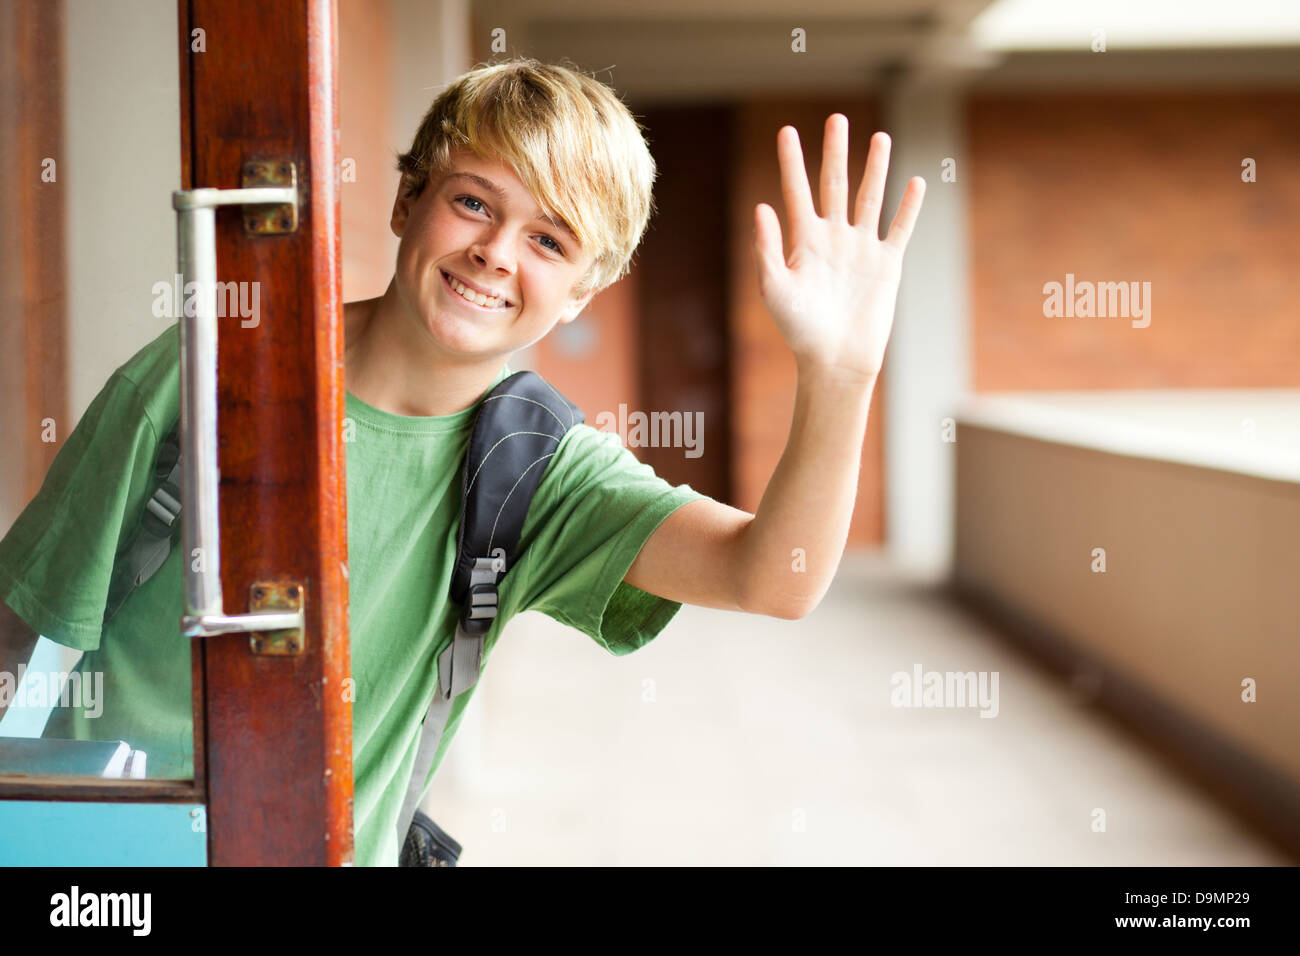 Waving Good ByeStock Photos and Images